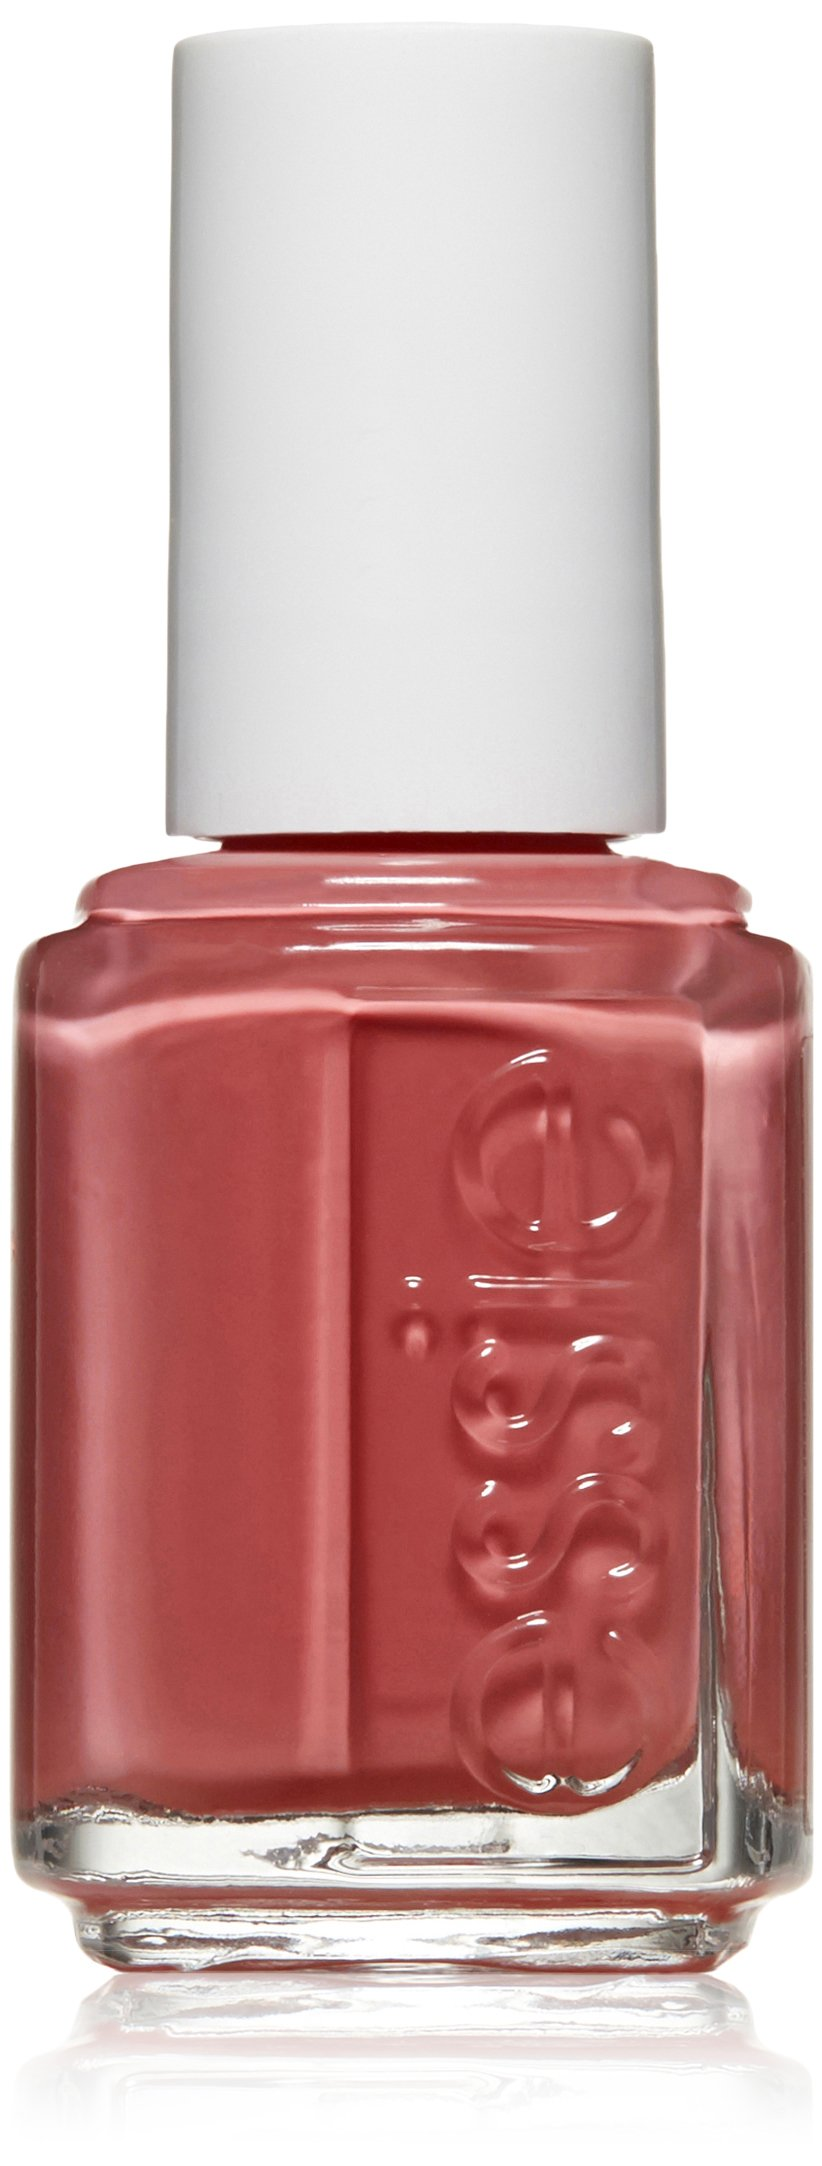 Amazon.com : essie nail polish, with the band, red nail polish, 0.46 ...